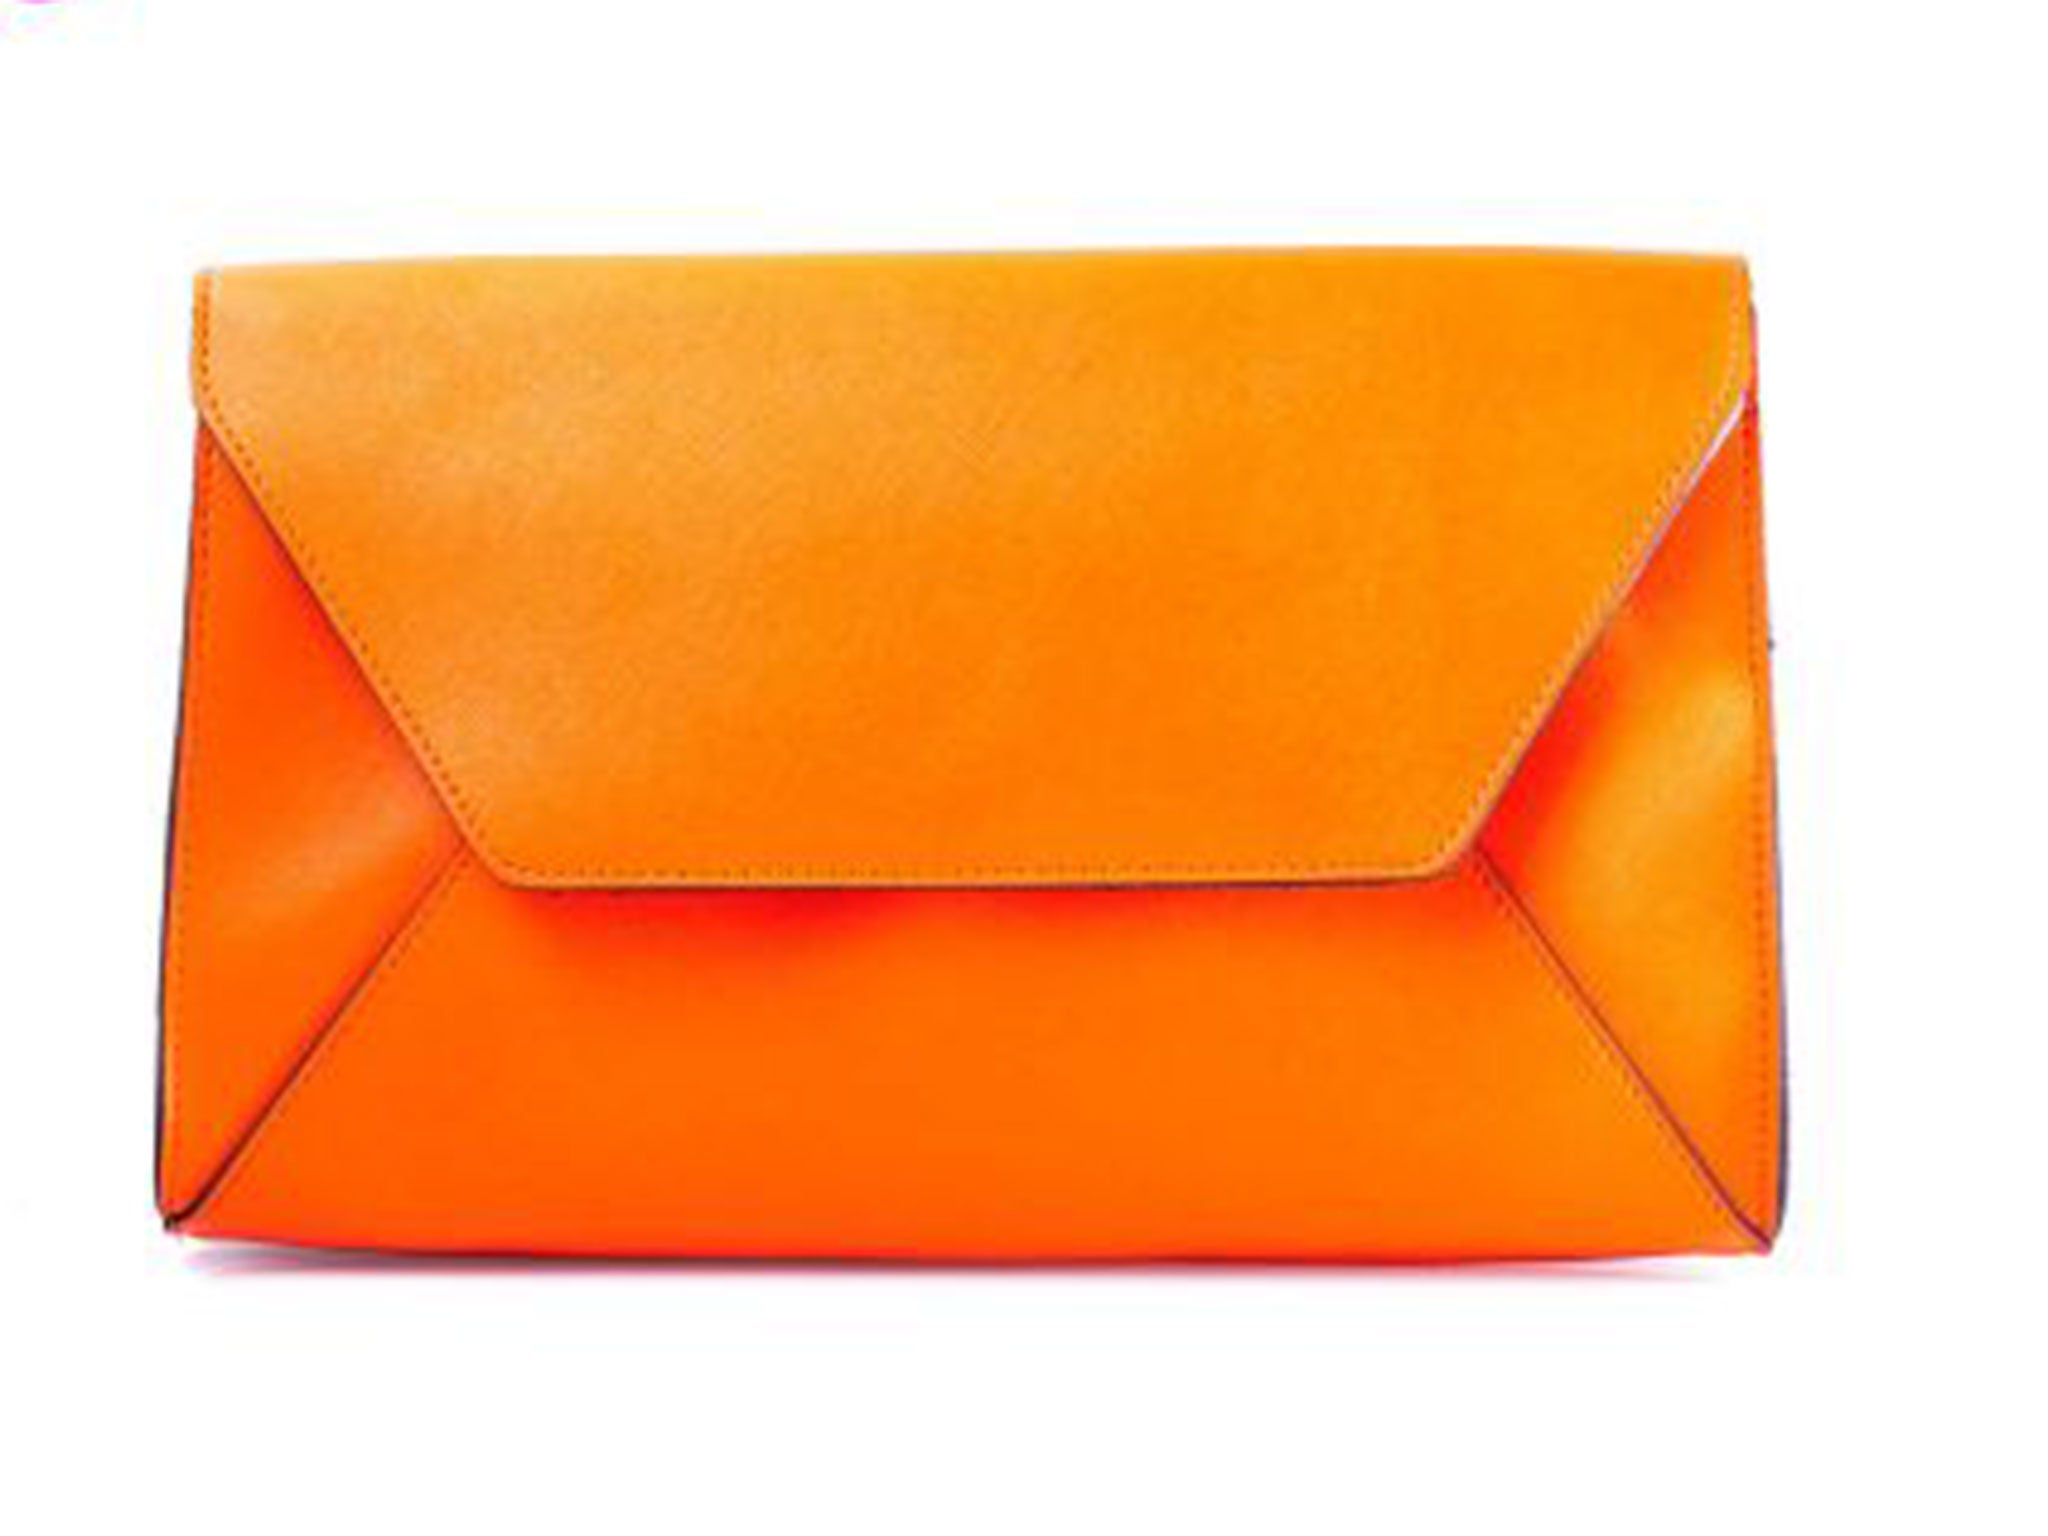 67c2a00a20514 Accessoryo Orange Envelope Style Clutch